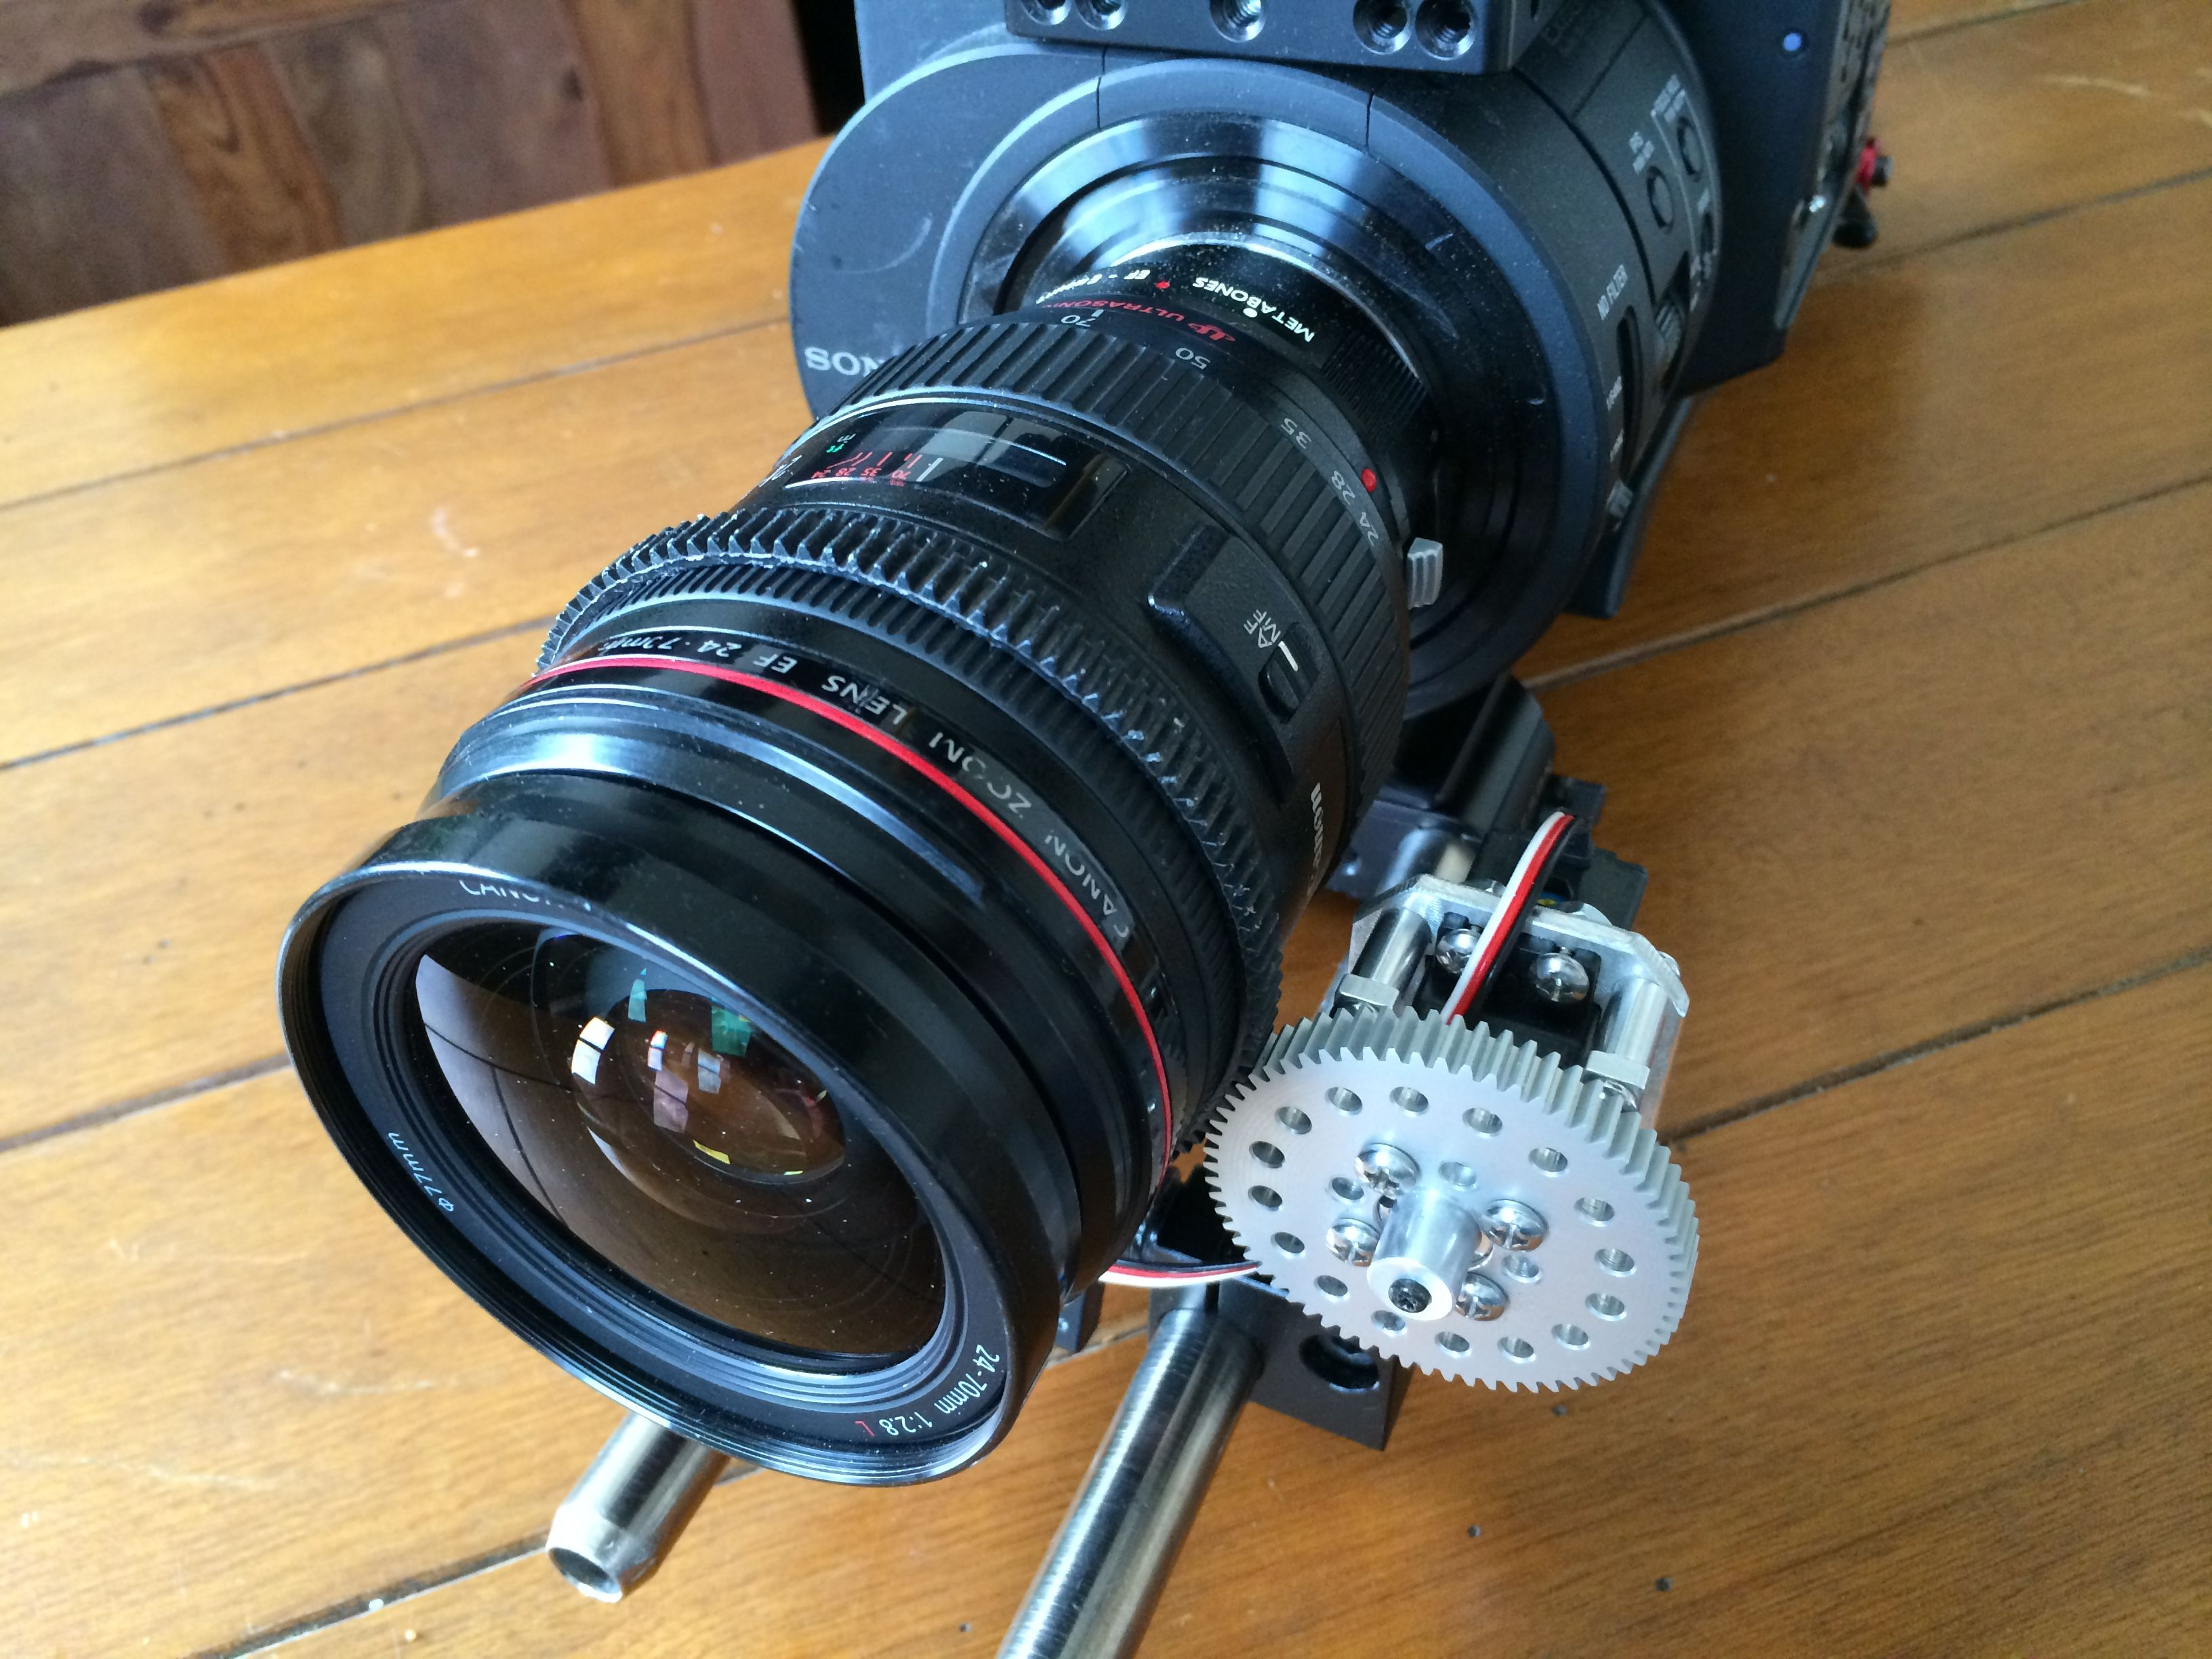 Jon B. has been working on building a remote focus motor for his video and stills cameras. Controlled by a micro controller and wireless module, it allows him to focus remotely with precision.